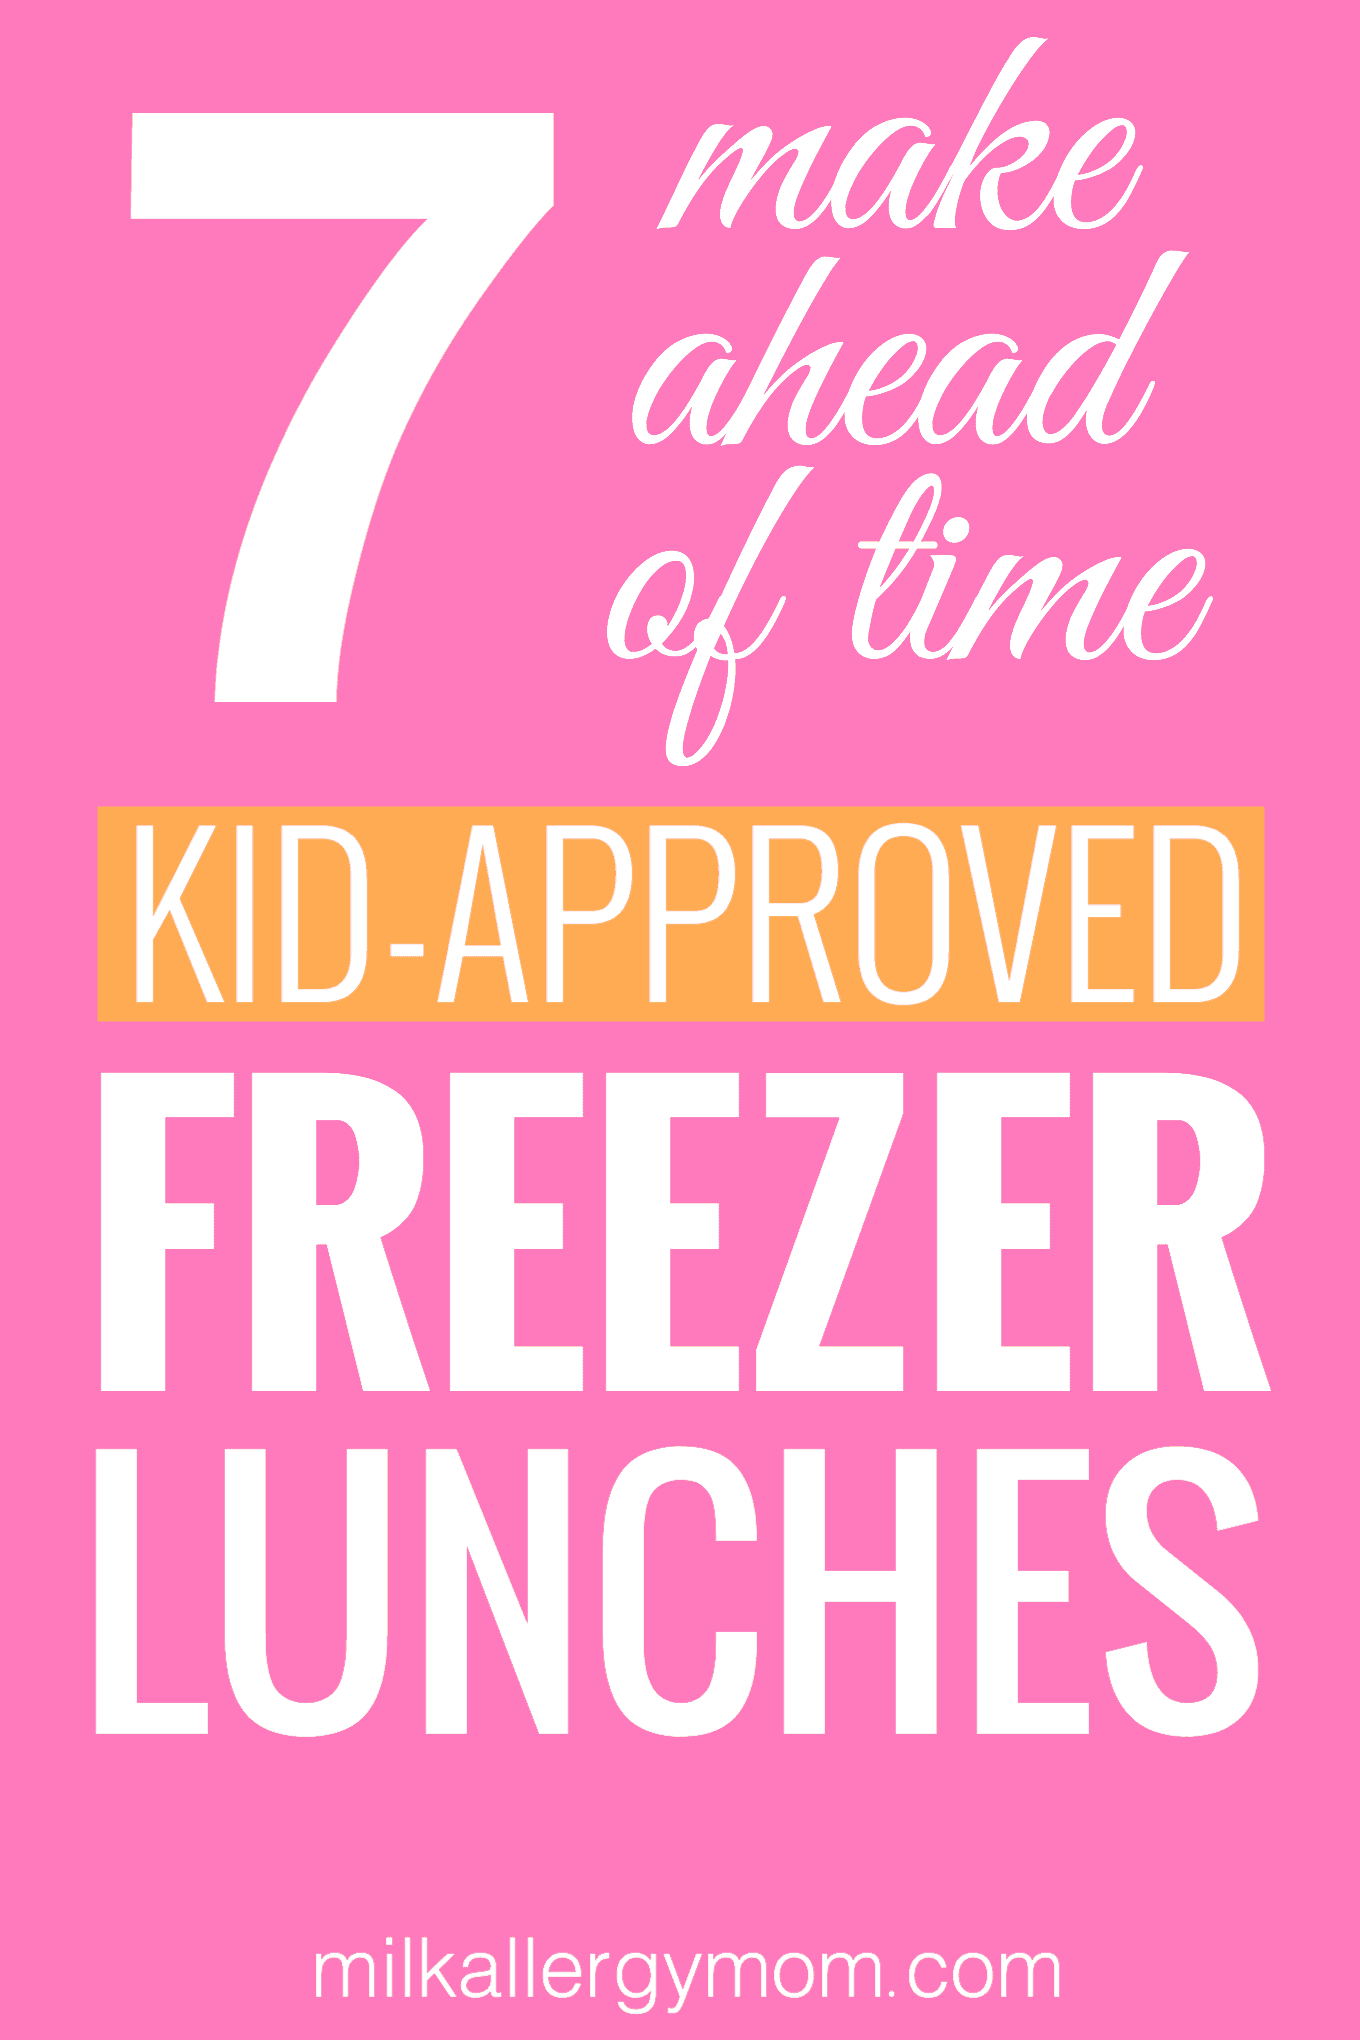 7 dairy free lunch ideas for kids